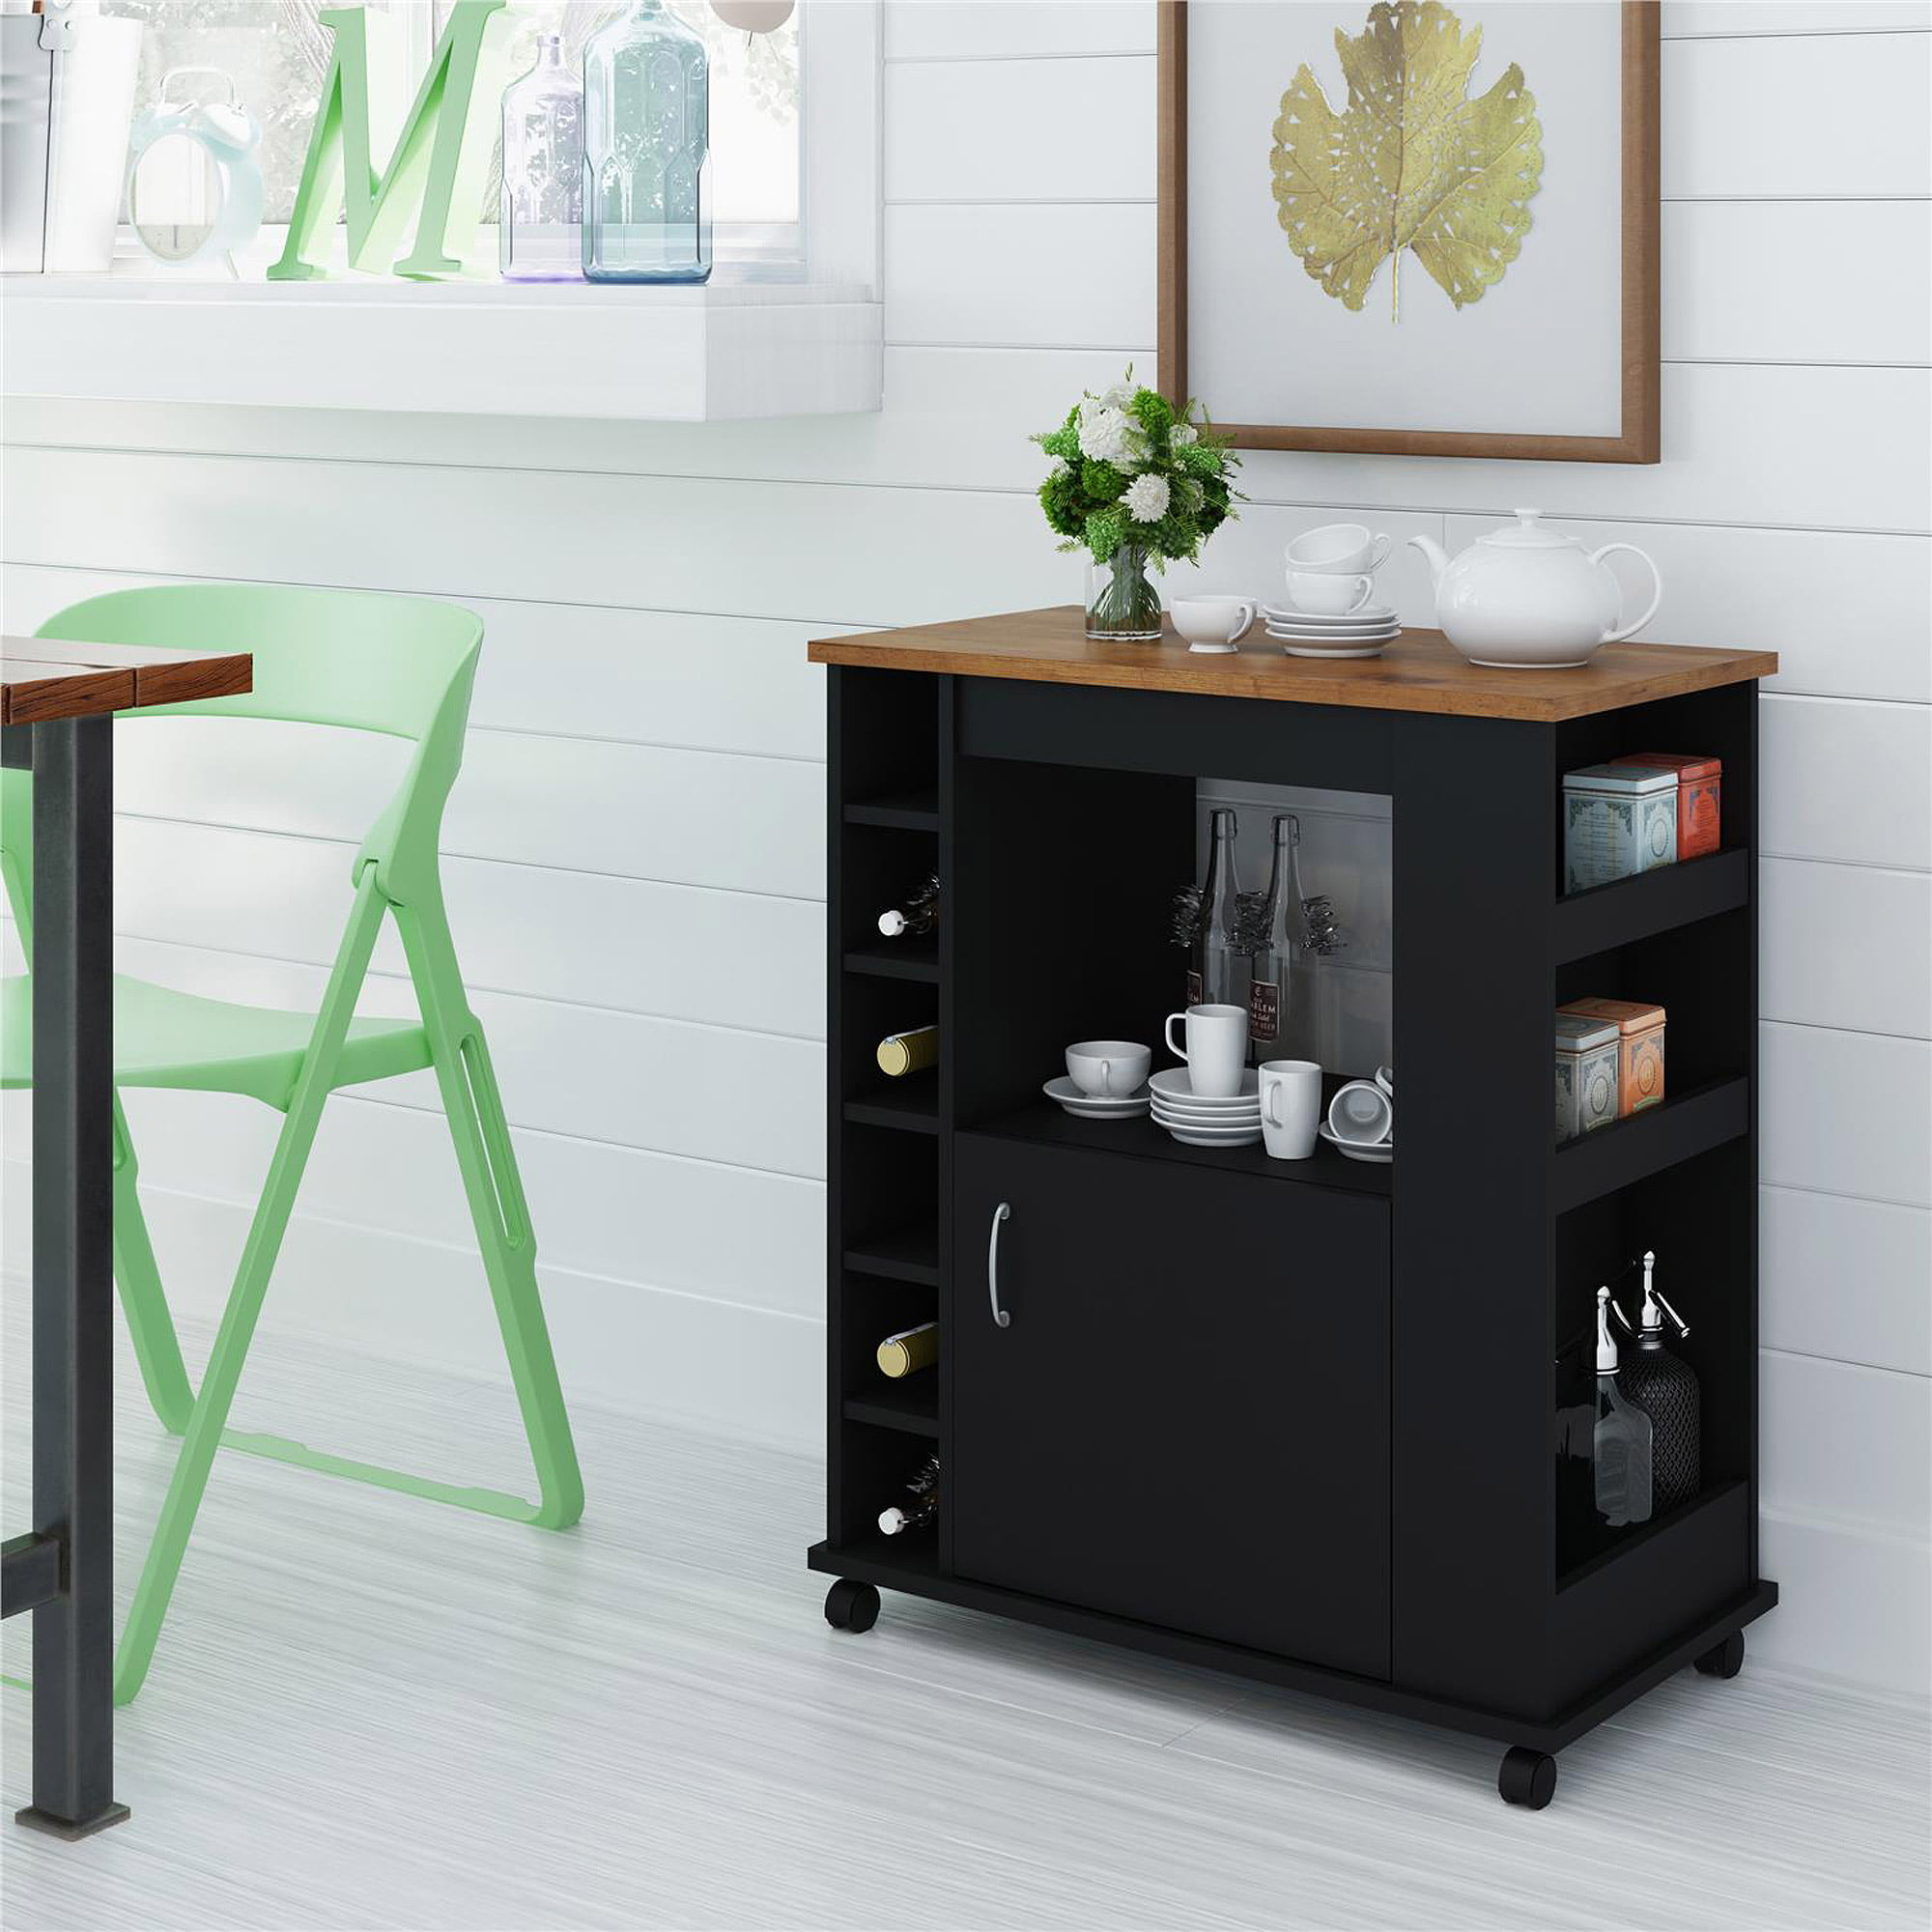 Kitchen Furniture Portable Kitchen Carts